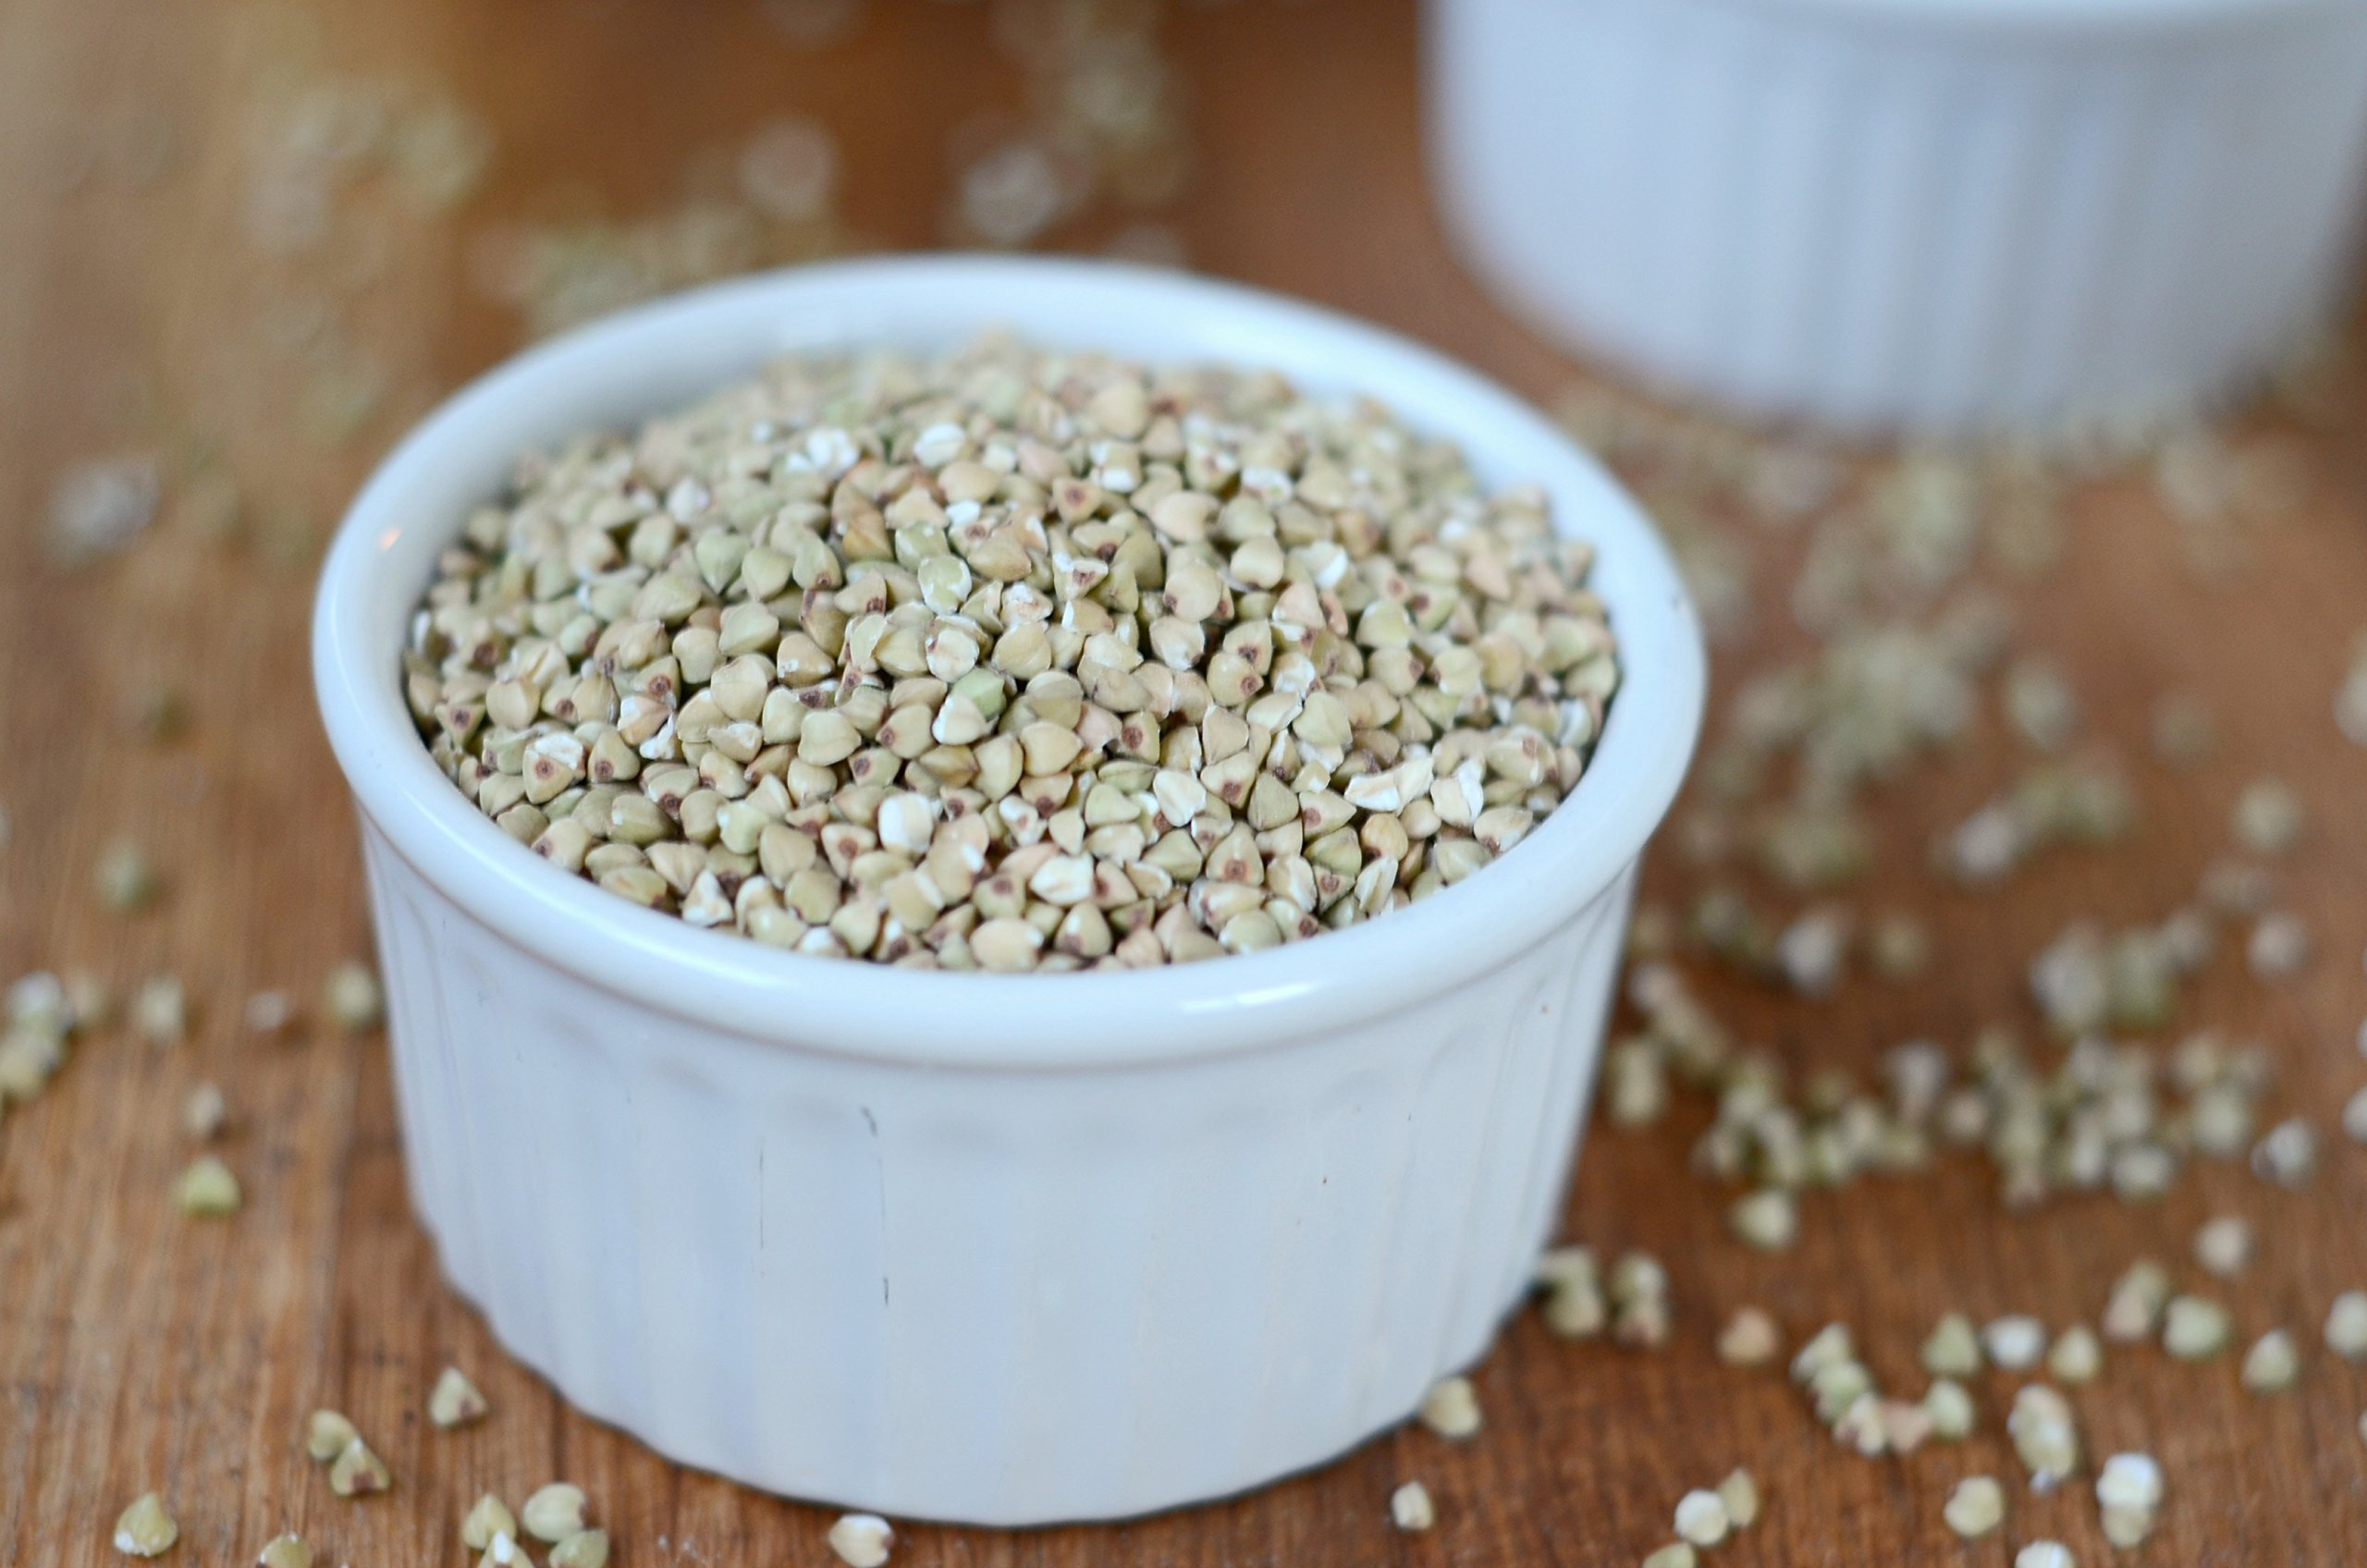 Organic Raw Hulled Buckwheat Groats (5lb) by Anthony's, Grown in USA, Gluten-Free by Anthony's (Image #8)